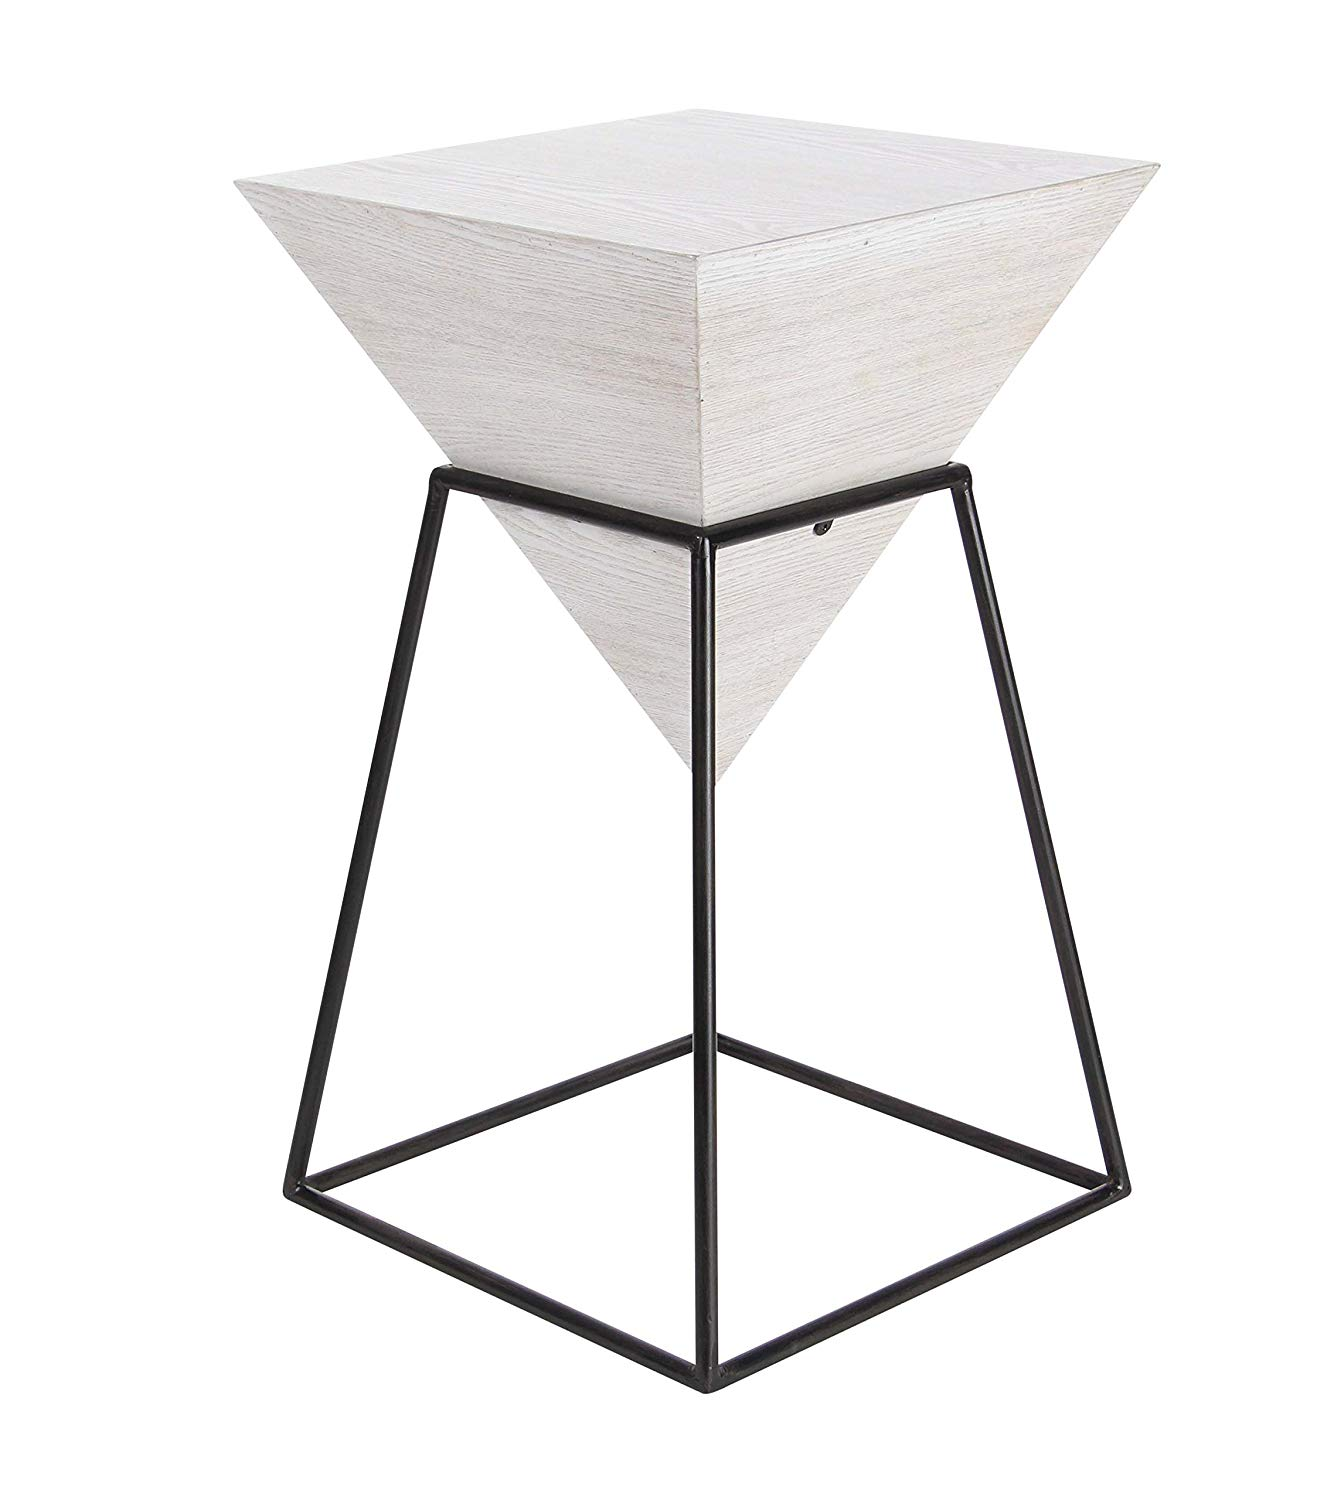 deco wood and metal square accent table eyelet gray black kitchen dining marble nesting coffee with casters brass base patio beer cooler small red side ashley furniture occasional